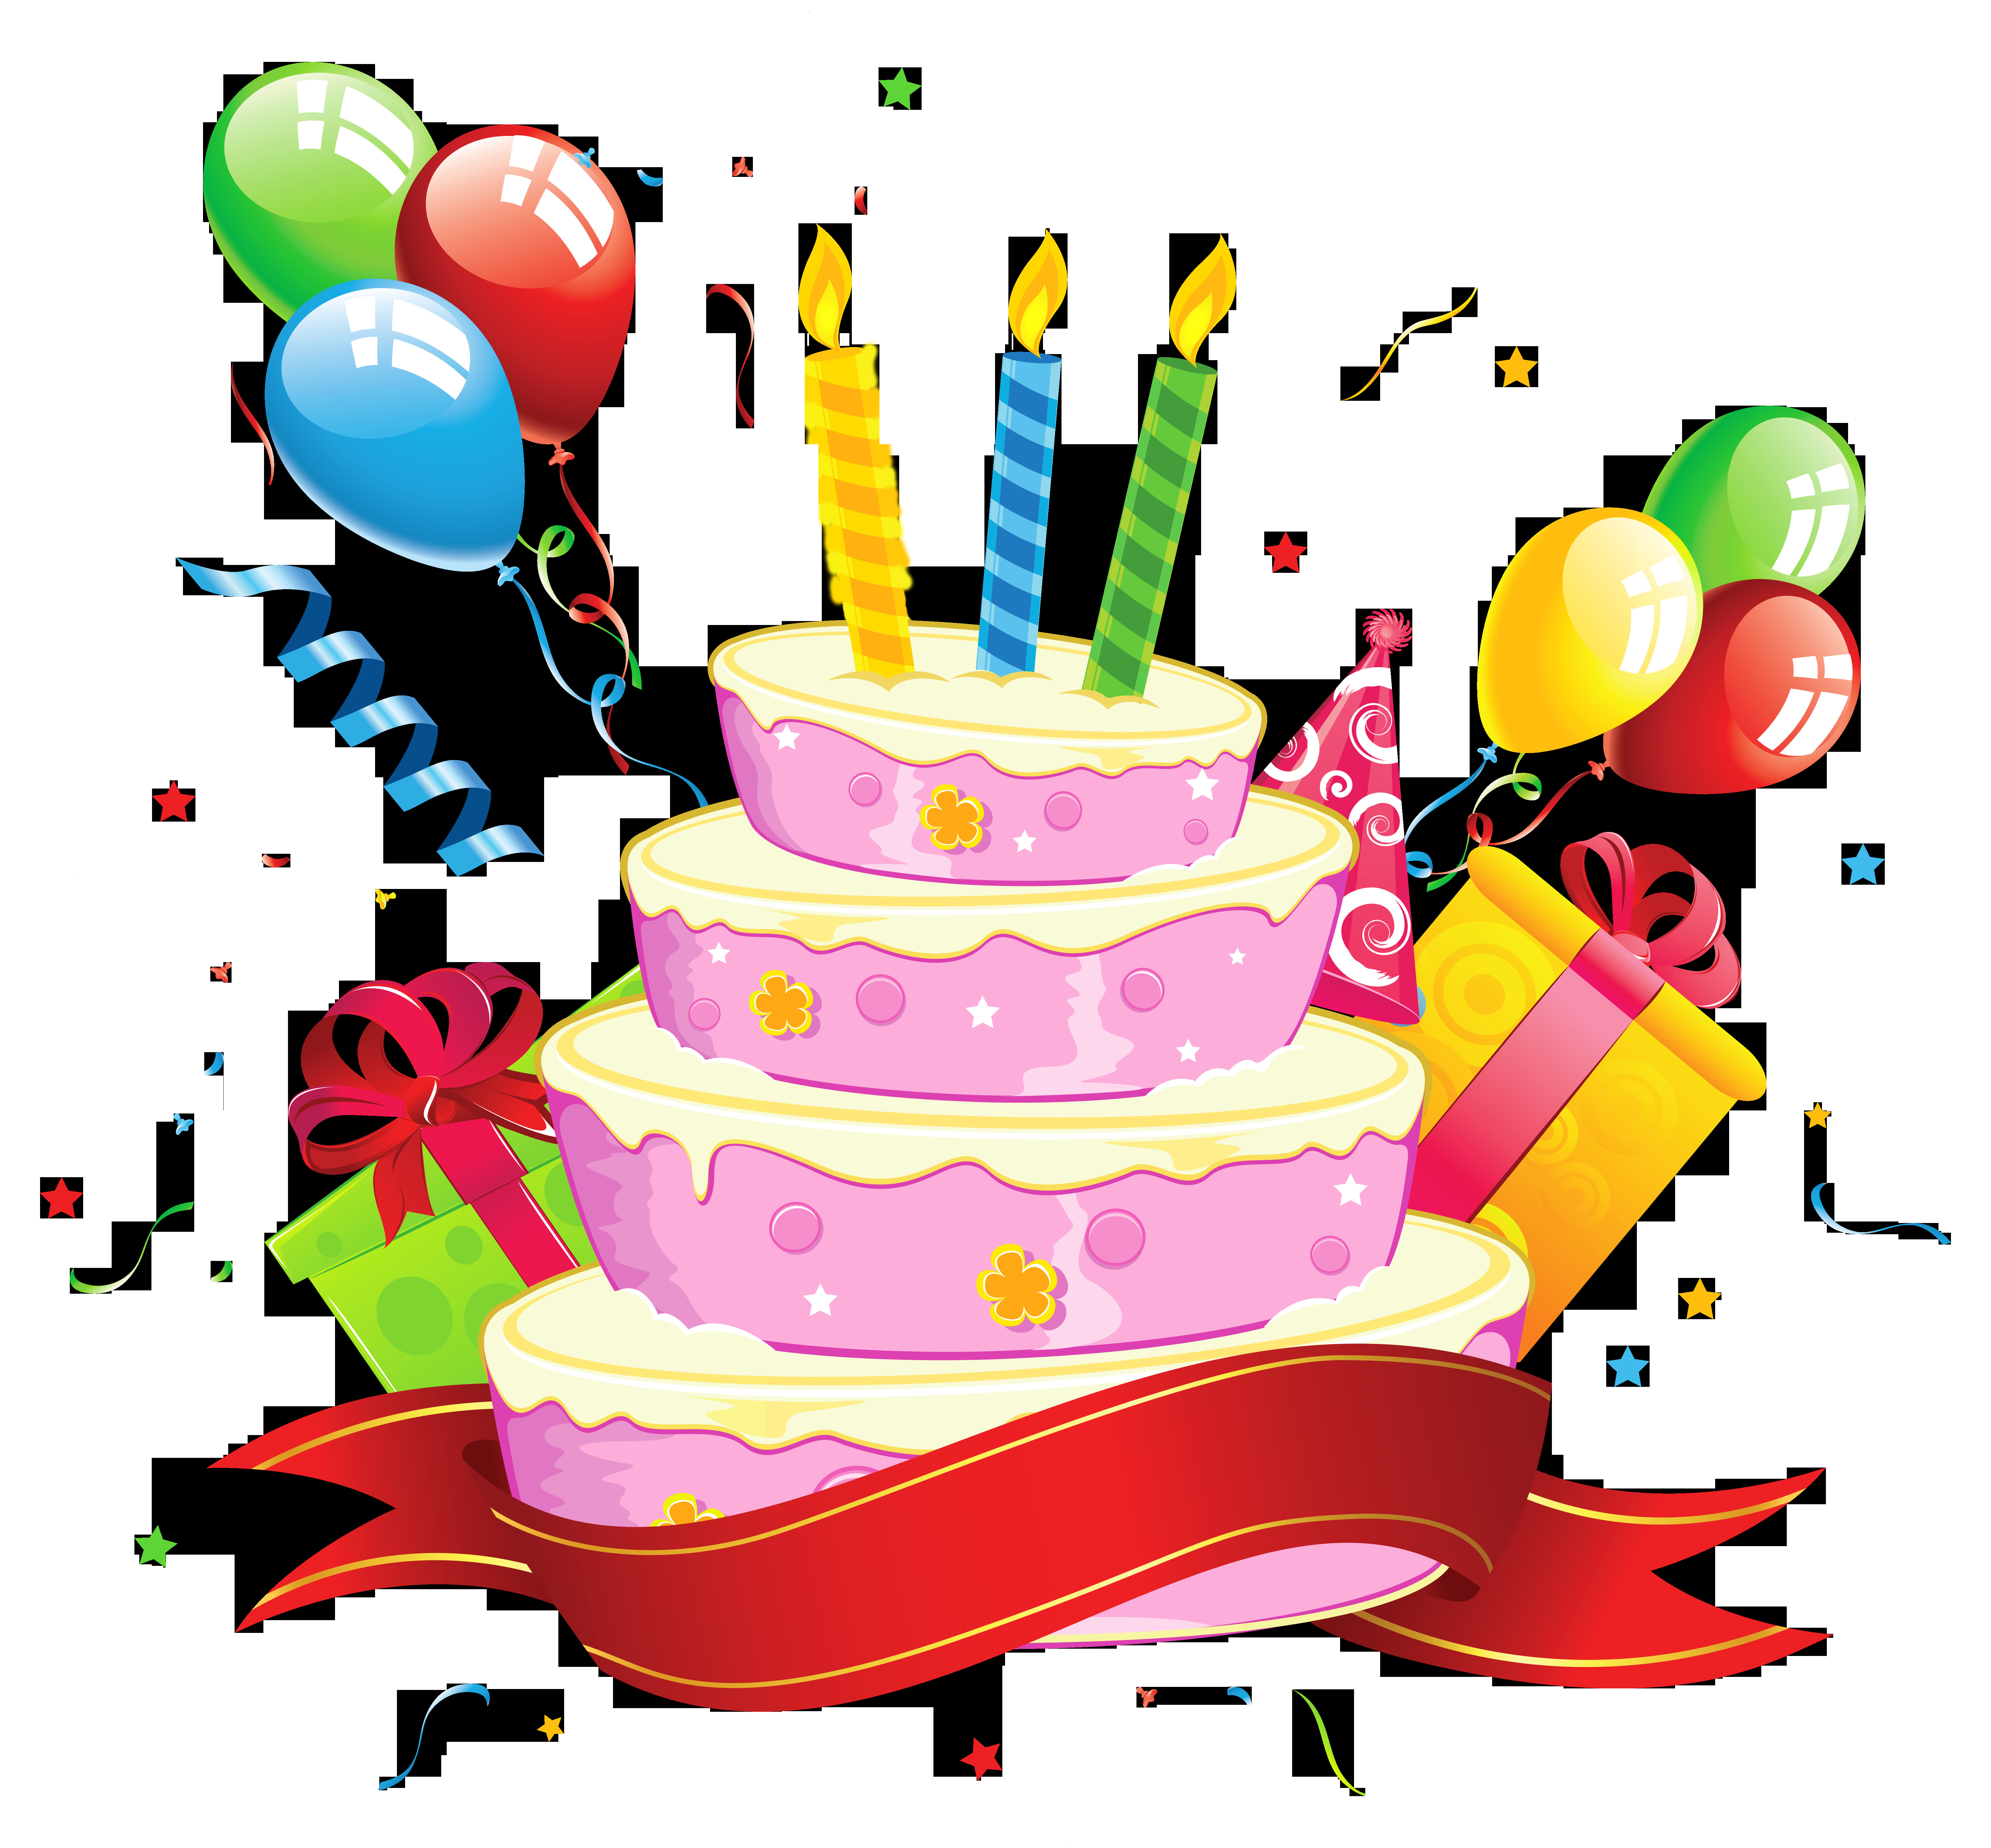 Clipart Birthday Cake  Cake clipart transparent background Pencil and in color